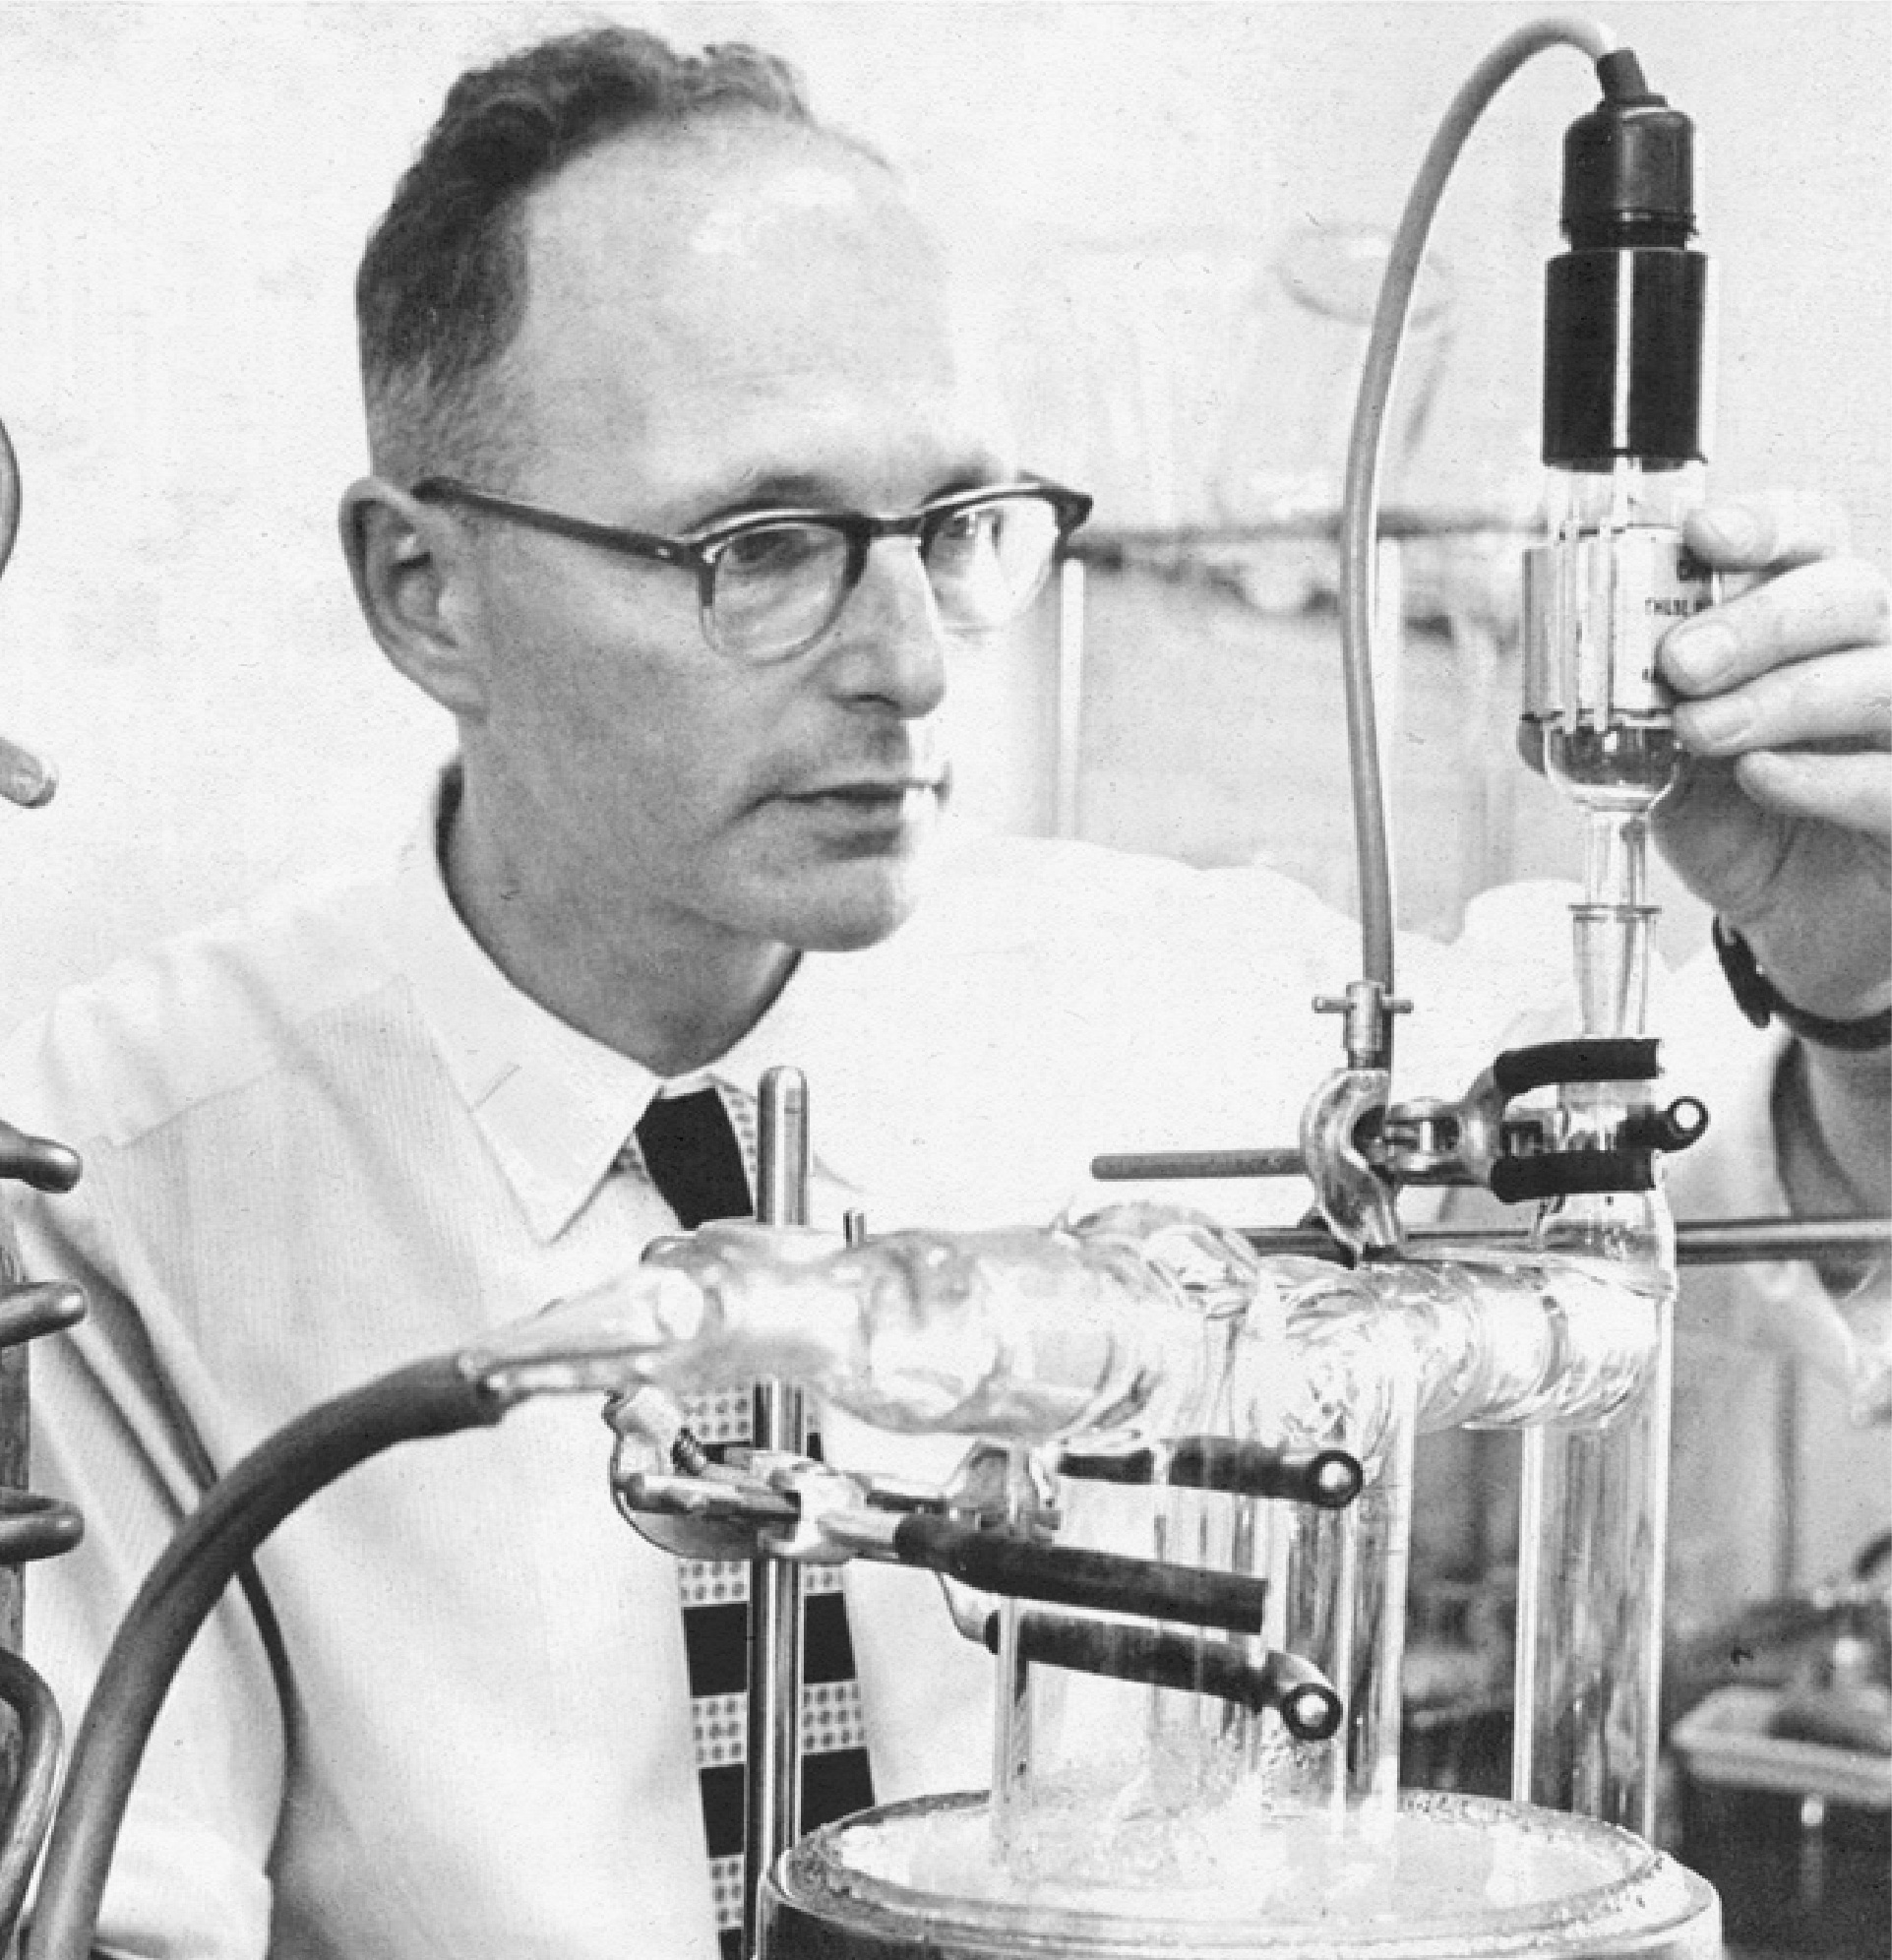 Vintage photo of a man studying scientific tubes.